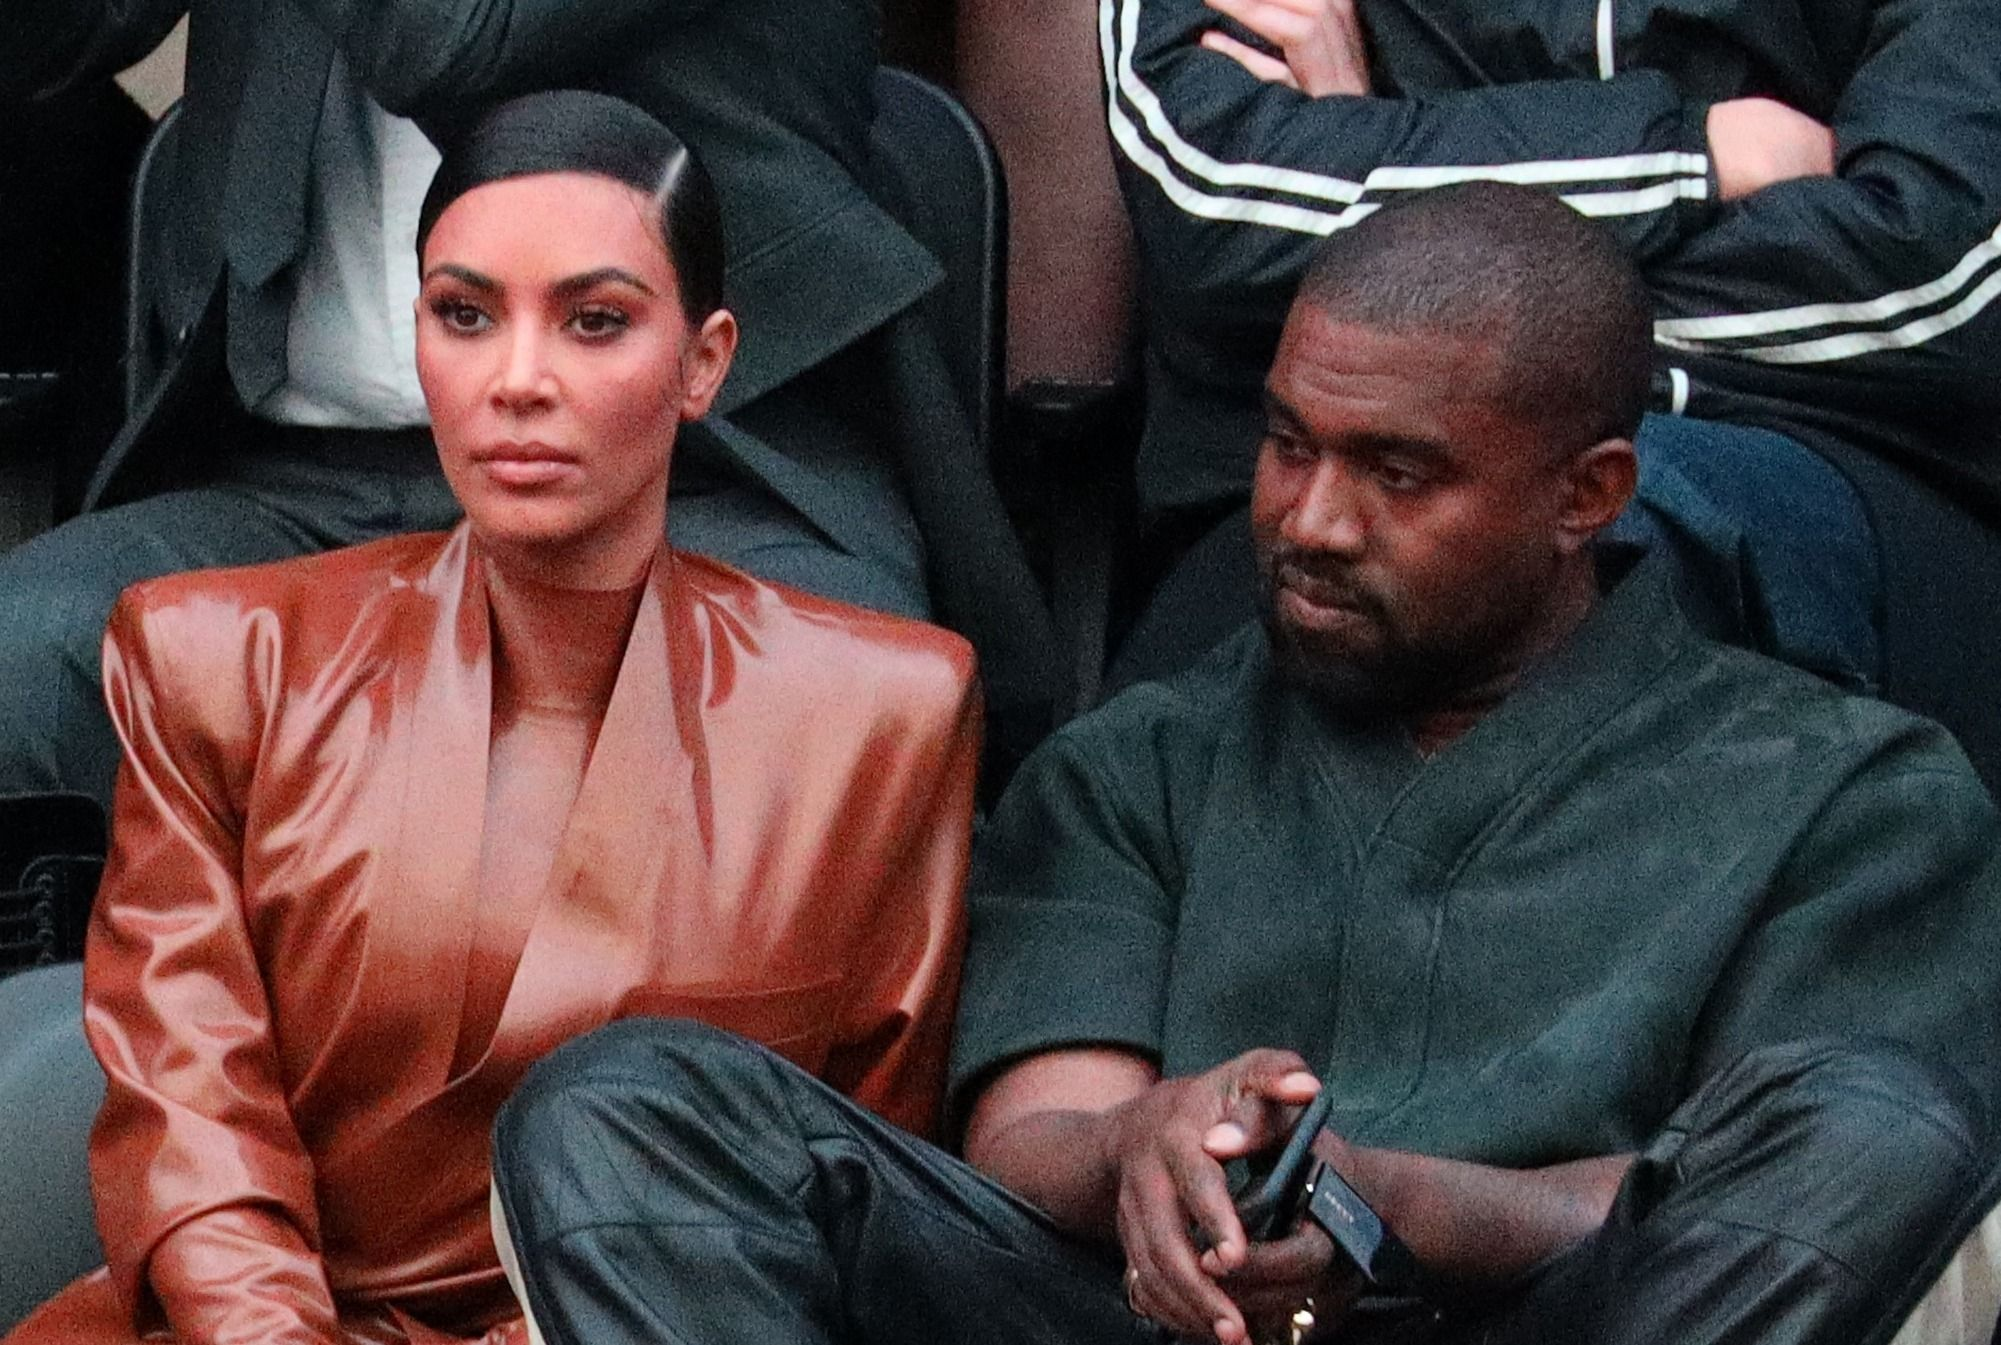 KUWTK: Kim Kardashian And Kanye West Won't Get A Divorce Even Though They Reportedly Live 'Separate Lives' – Here's Why!